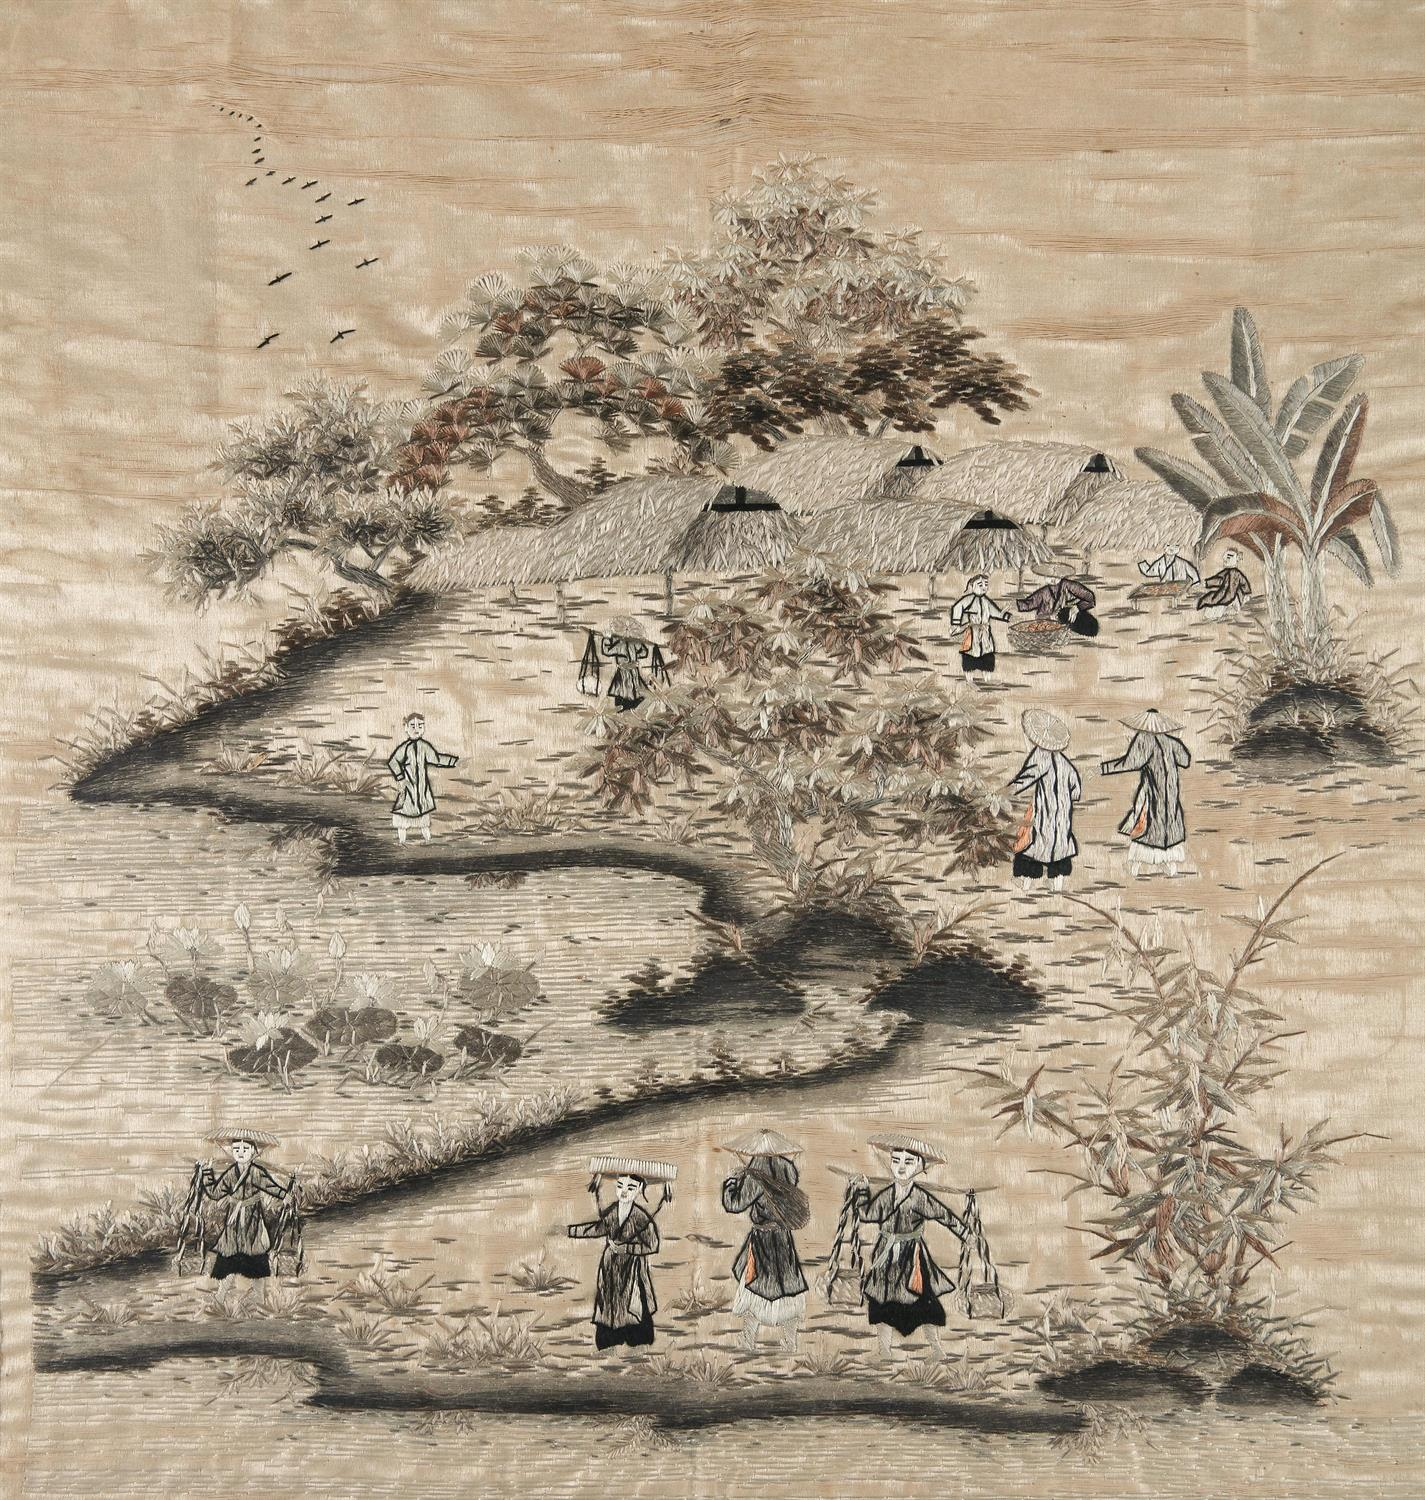 A 'PROCESSION' EMBROIDERED SILK PANEL Vietnam / Indochina, 20th century 48,5 x 46 cm TRANH LỤA - Image 4 of 6